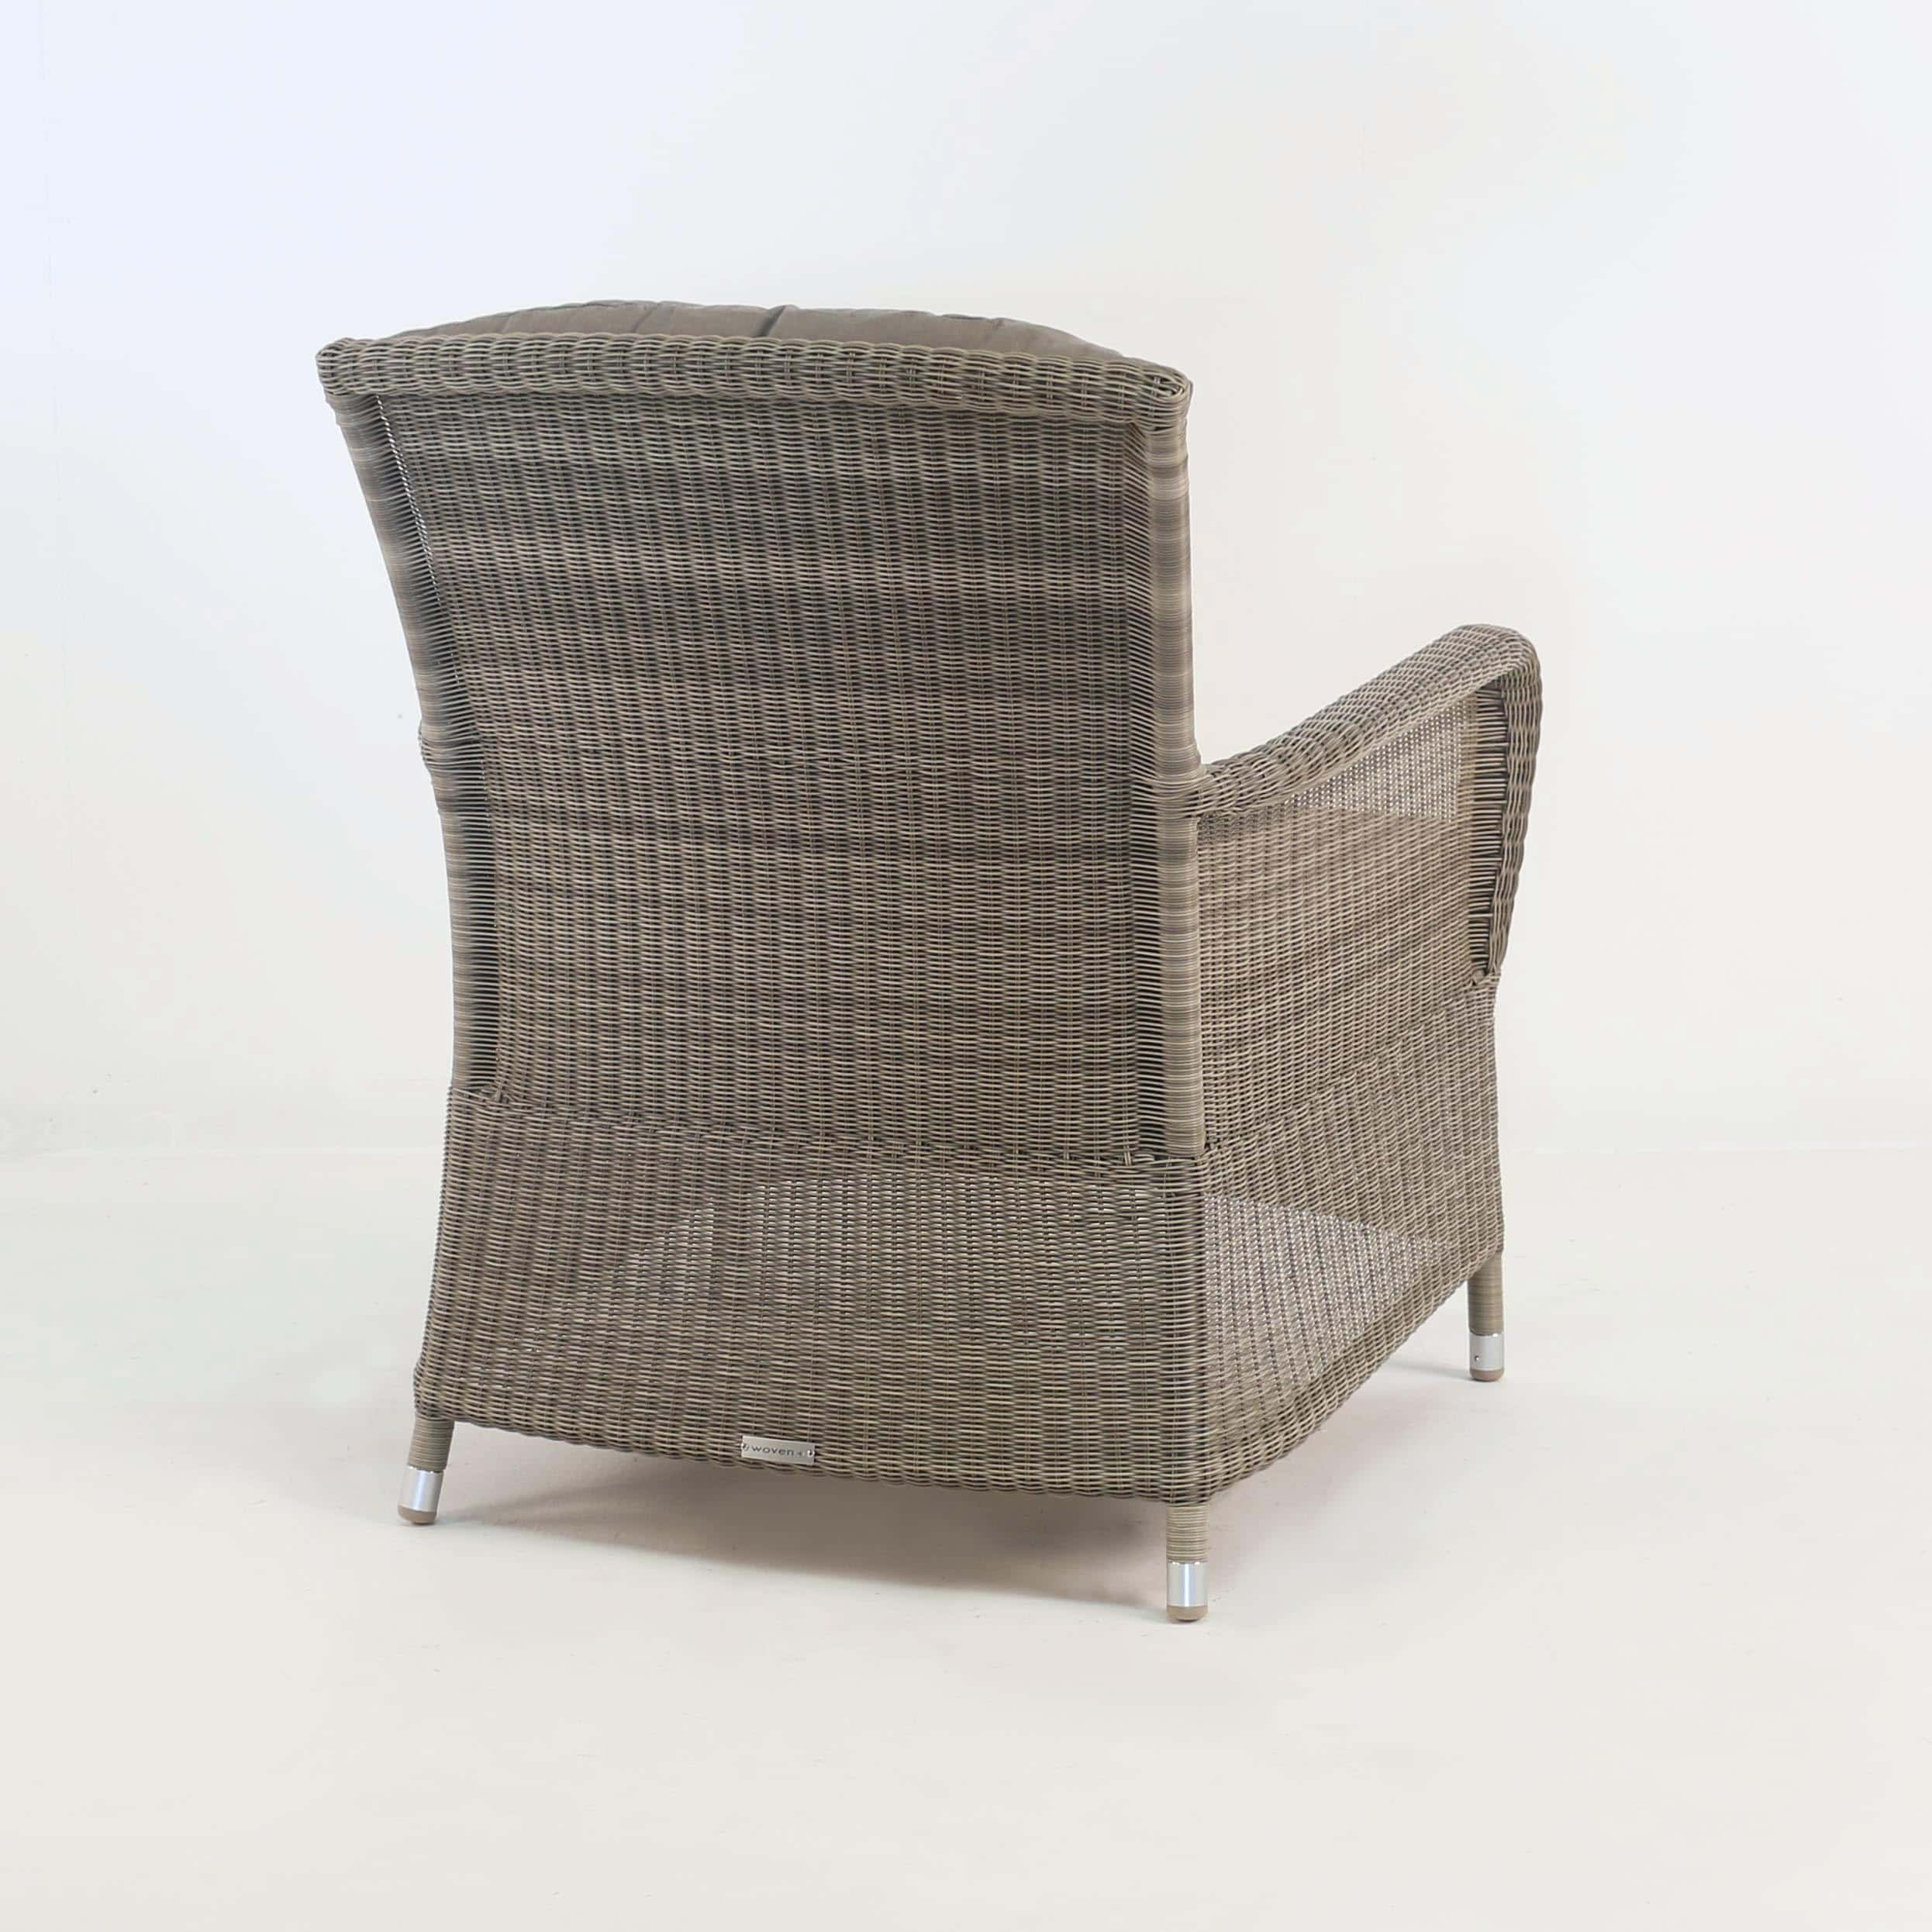 Gilbert occasional relaxing chair seaside design for Relaxing chair design